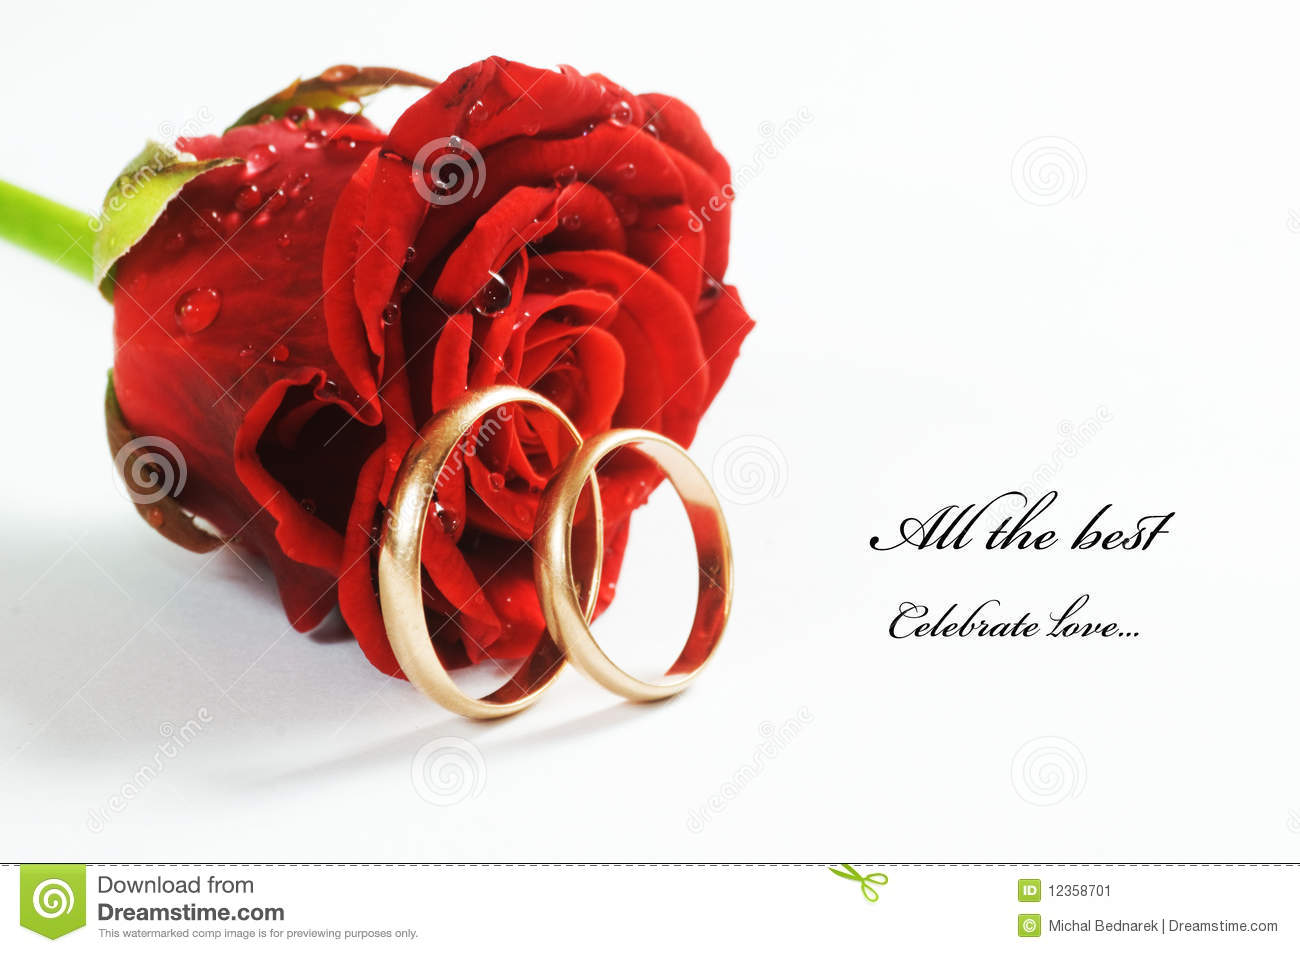 Married Couple Wallpaper With Quotes Red Rose And Wedding Ring Stock Image Image 12358701